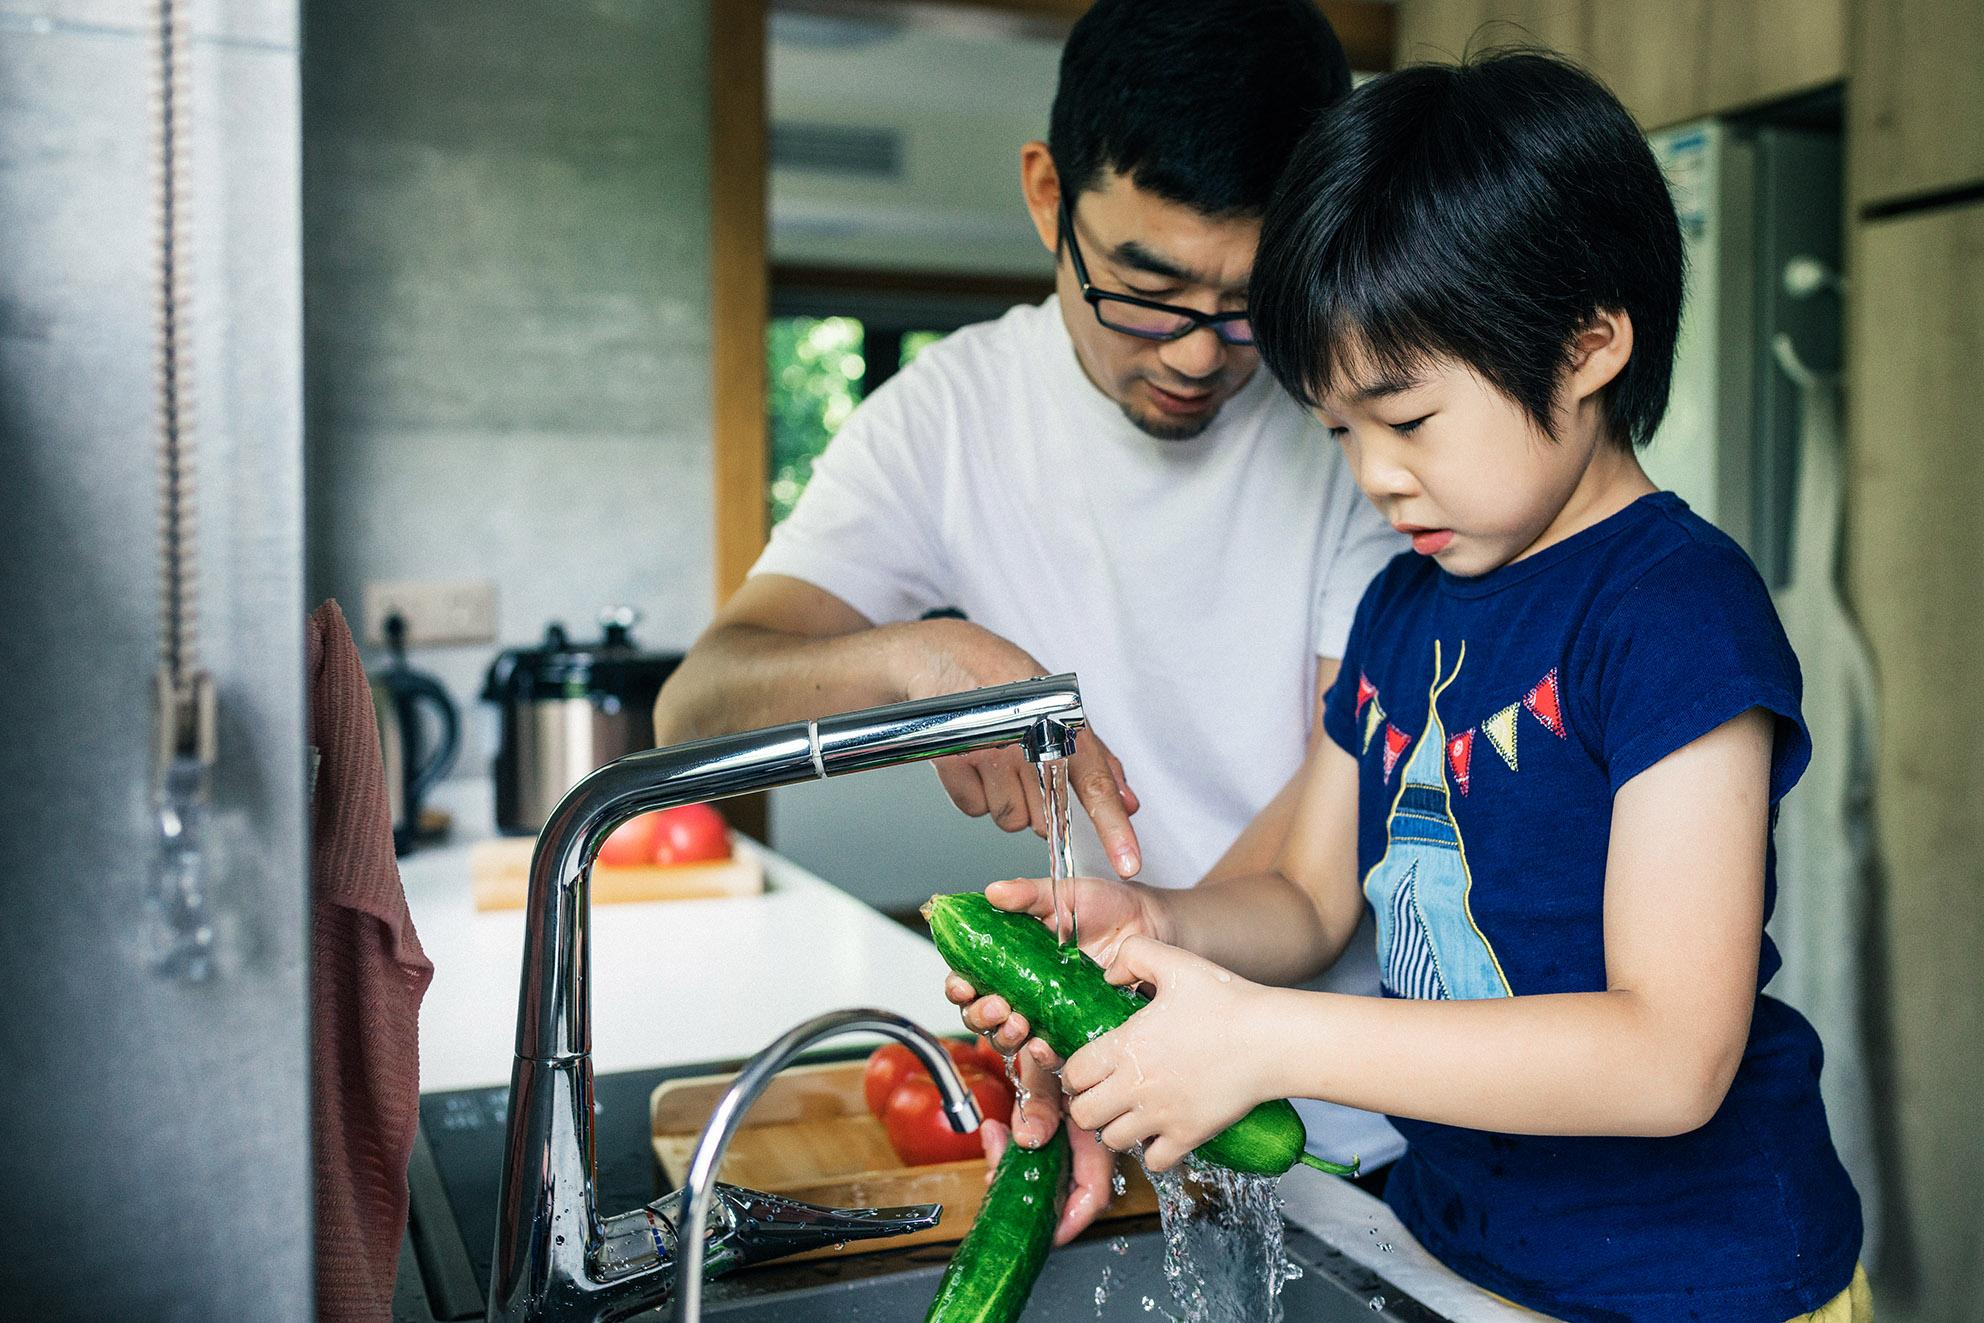 Father and daughter washing vegetables